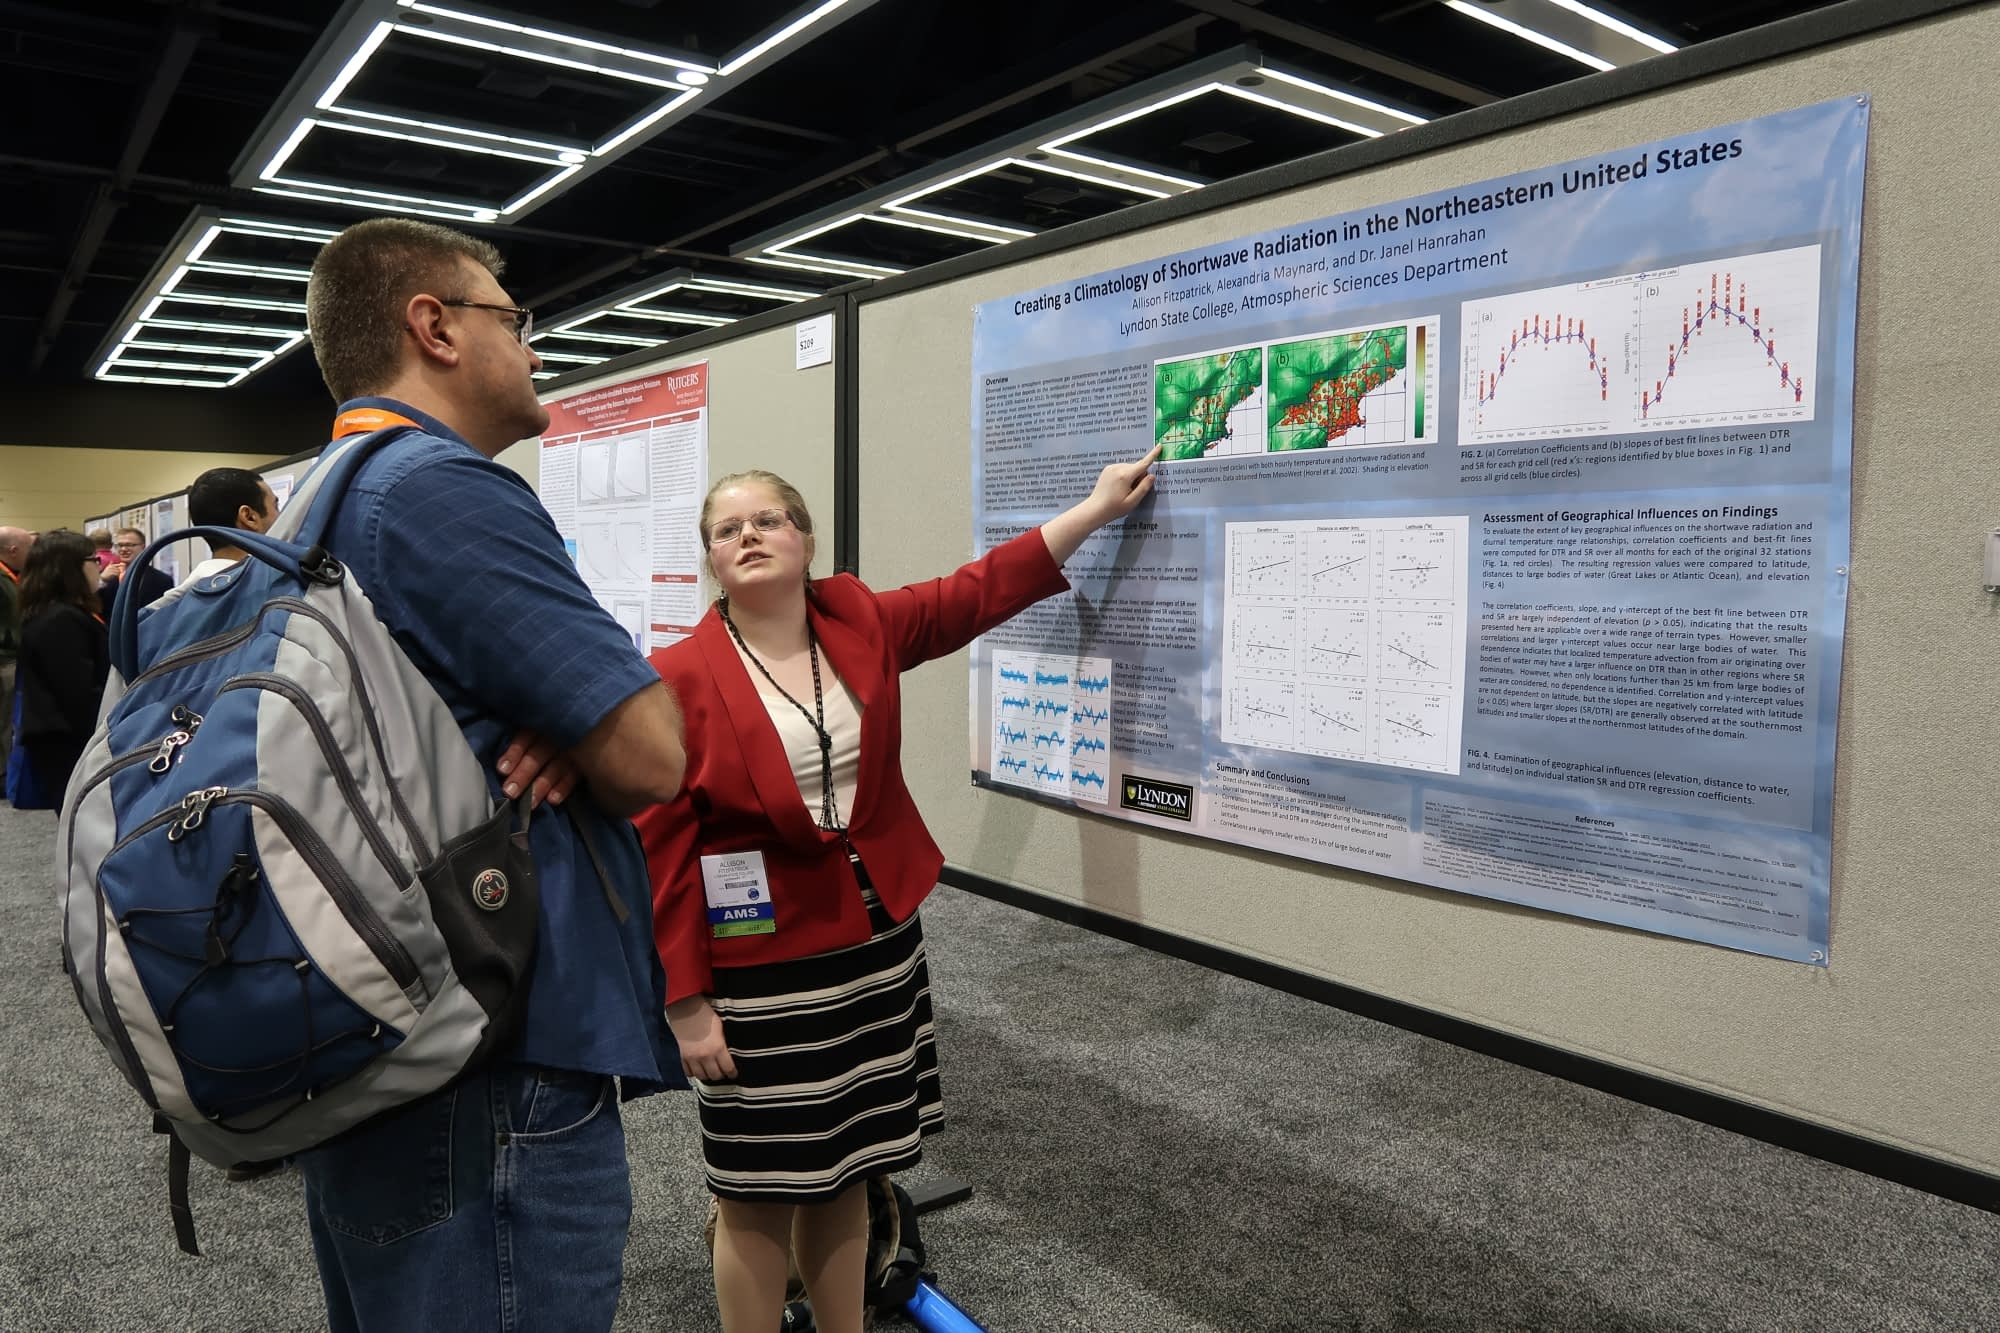 Allison Fitzpatrick explains her co-authored research on Creating a Climatology of Shortwave Radiation in the Northeastern United States